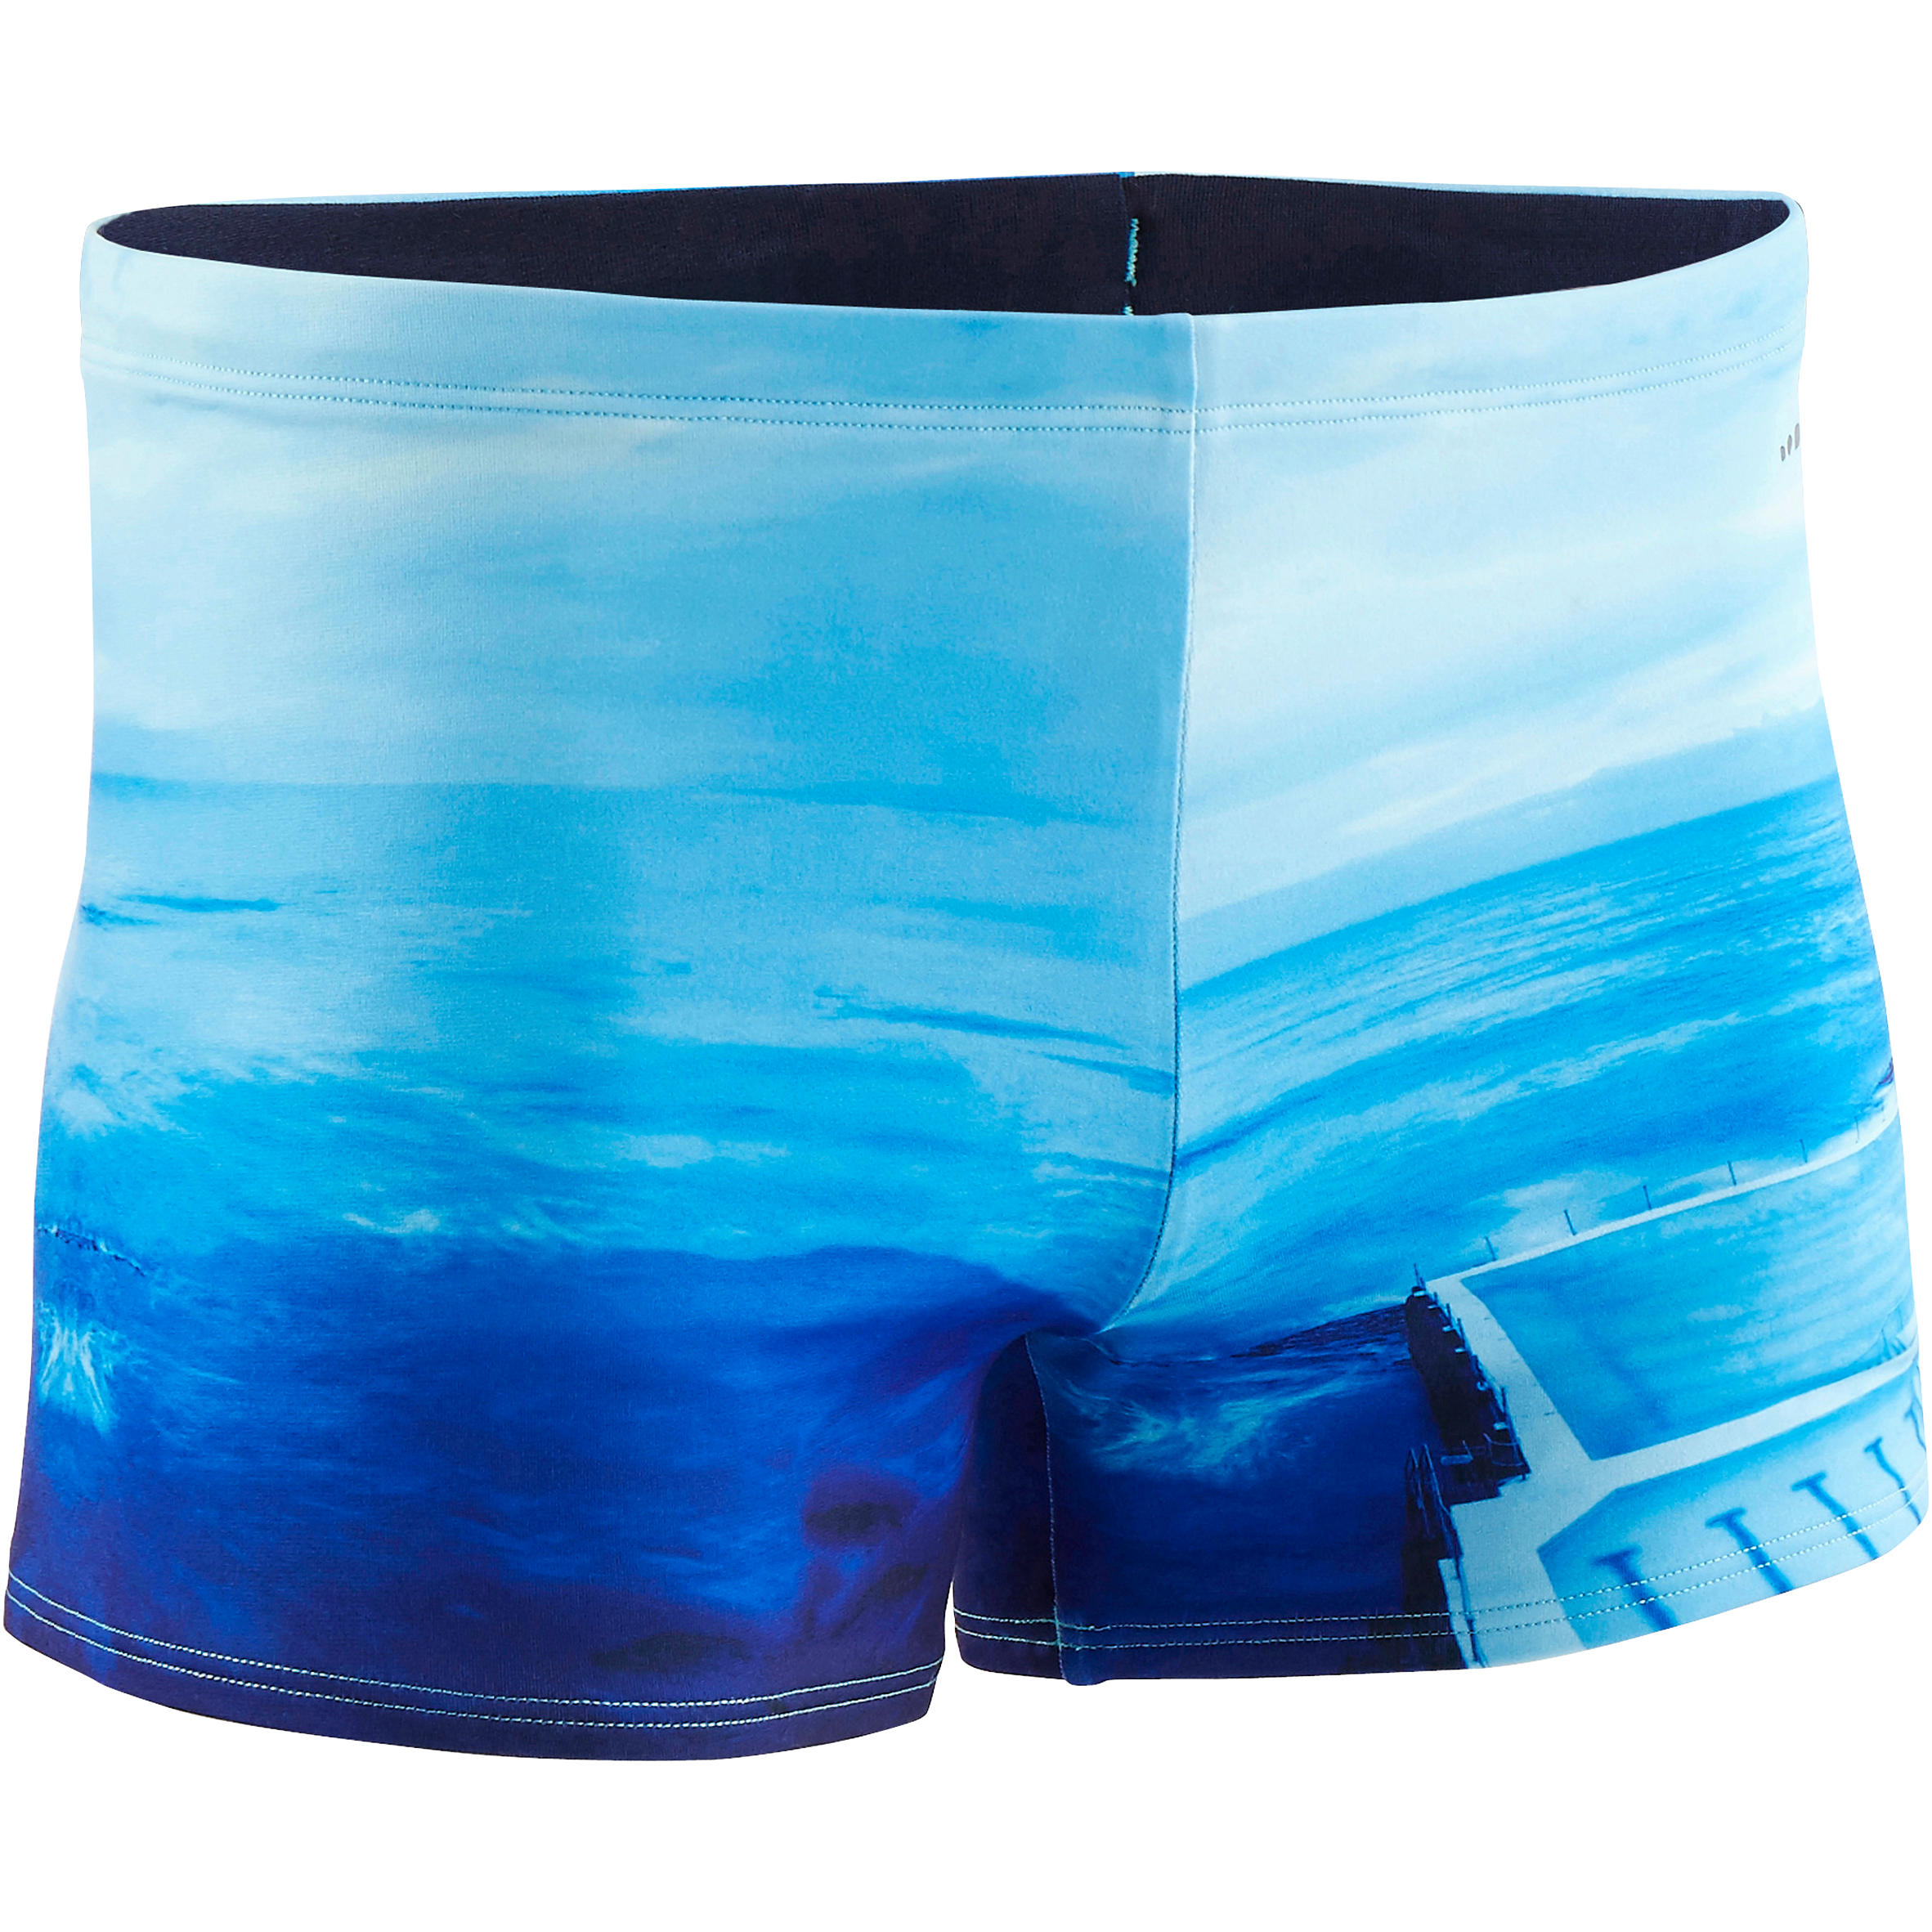 Men swimming trunk b-fit - PRINT BONDI BEACH